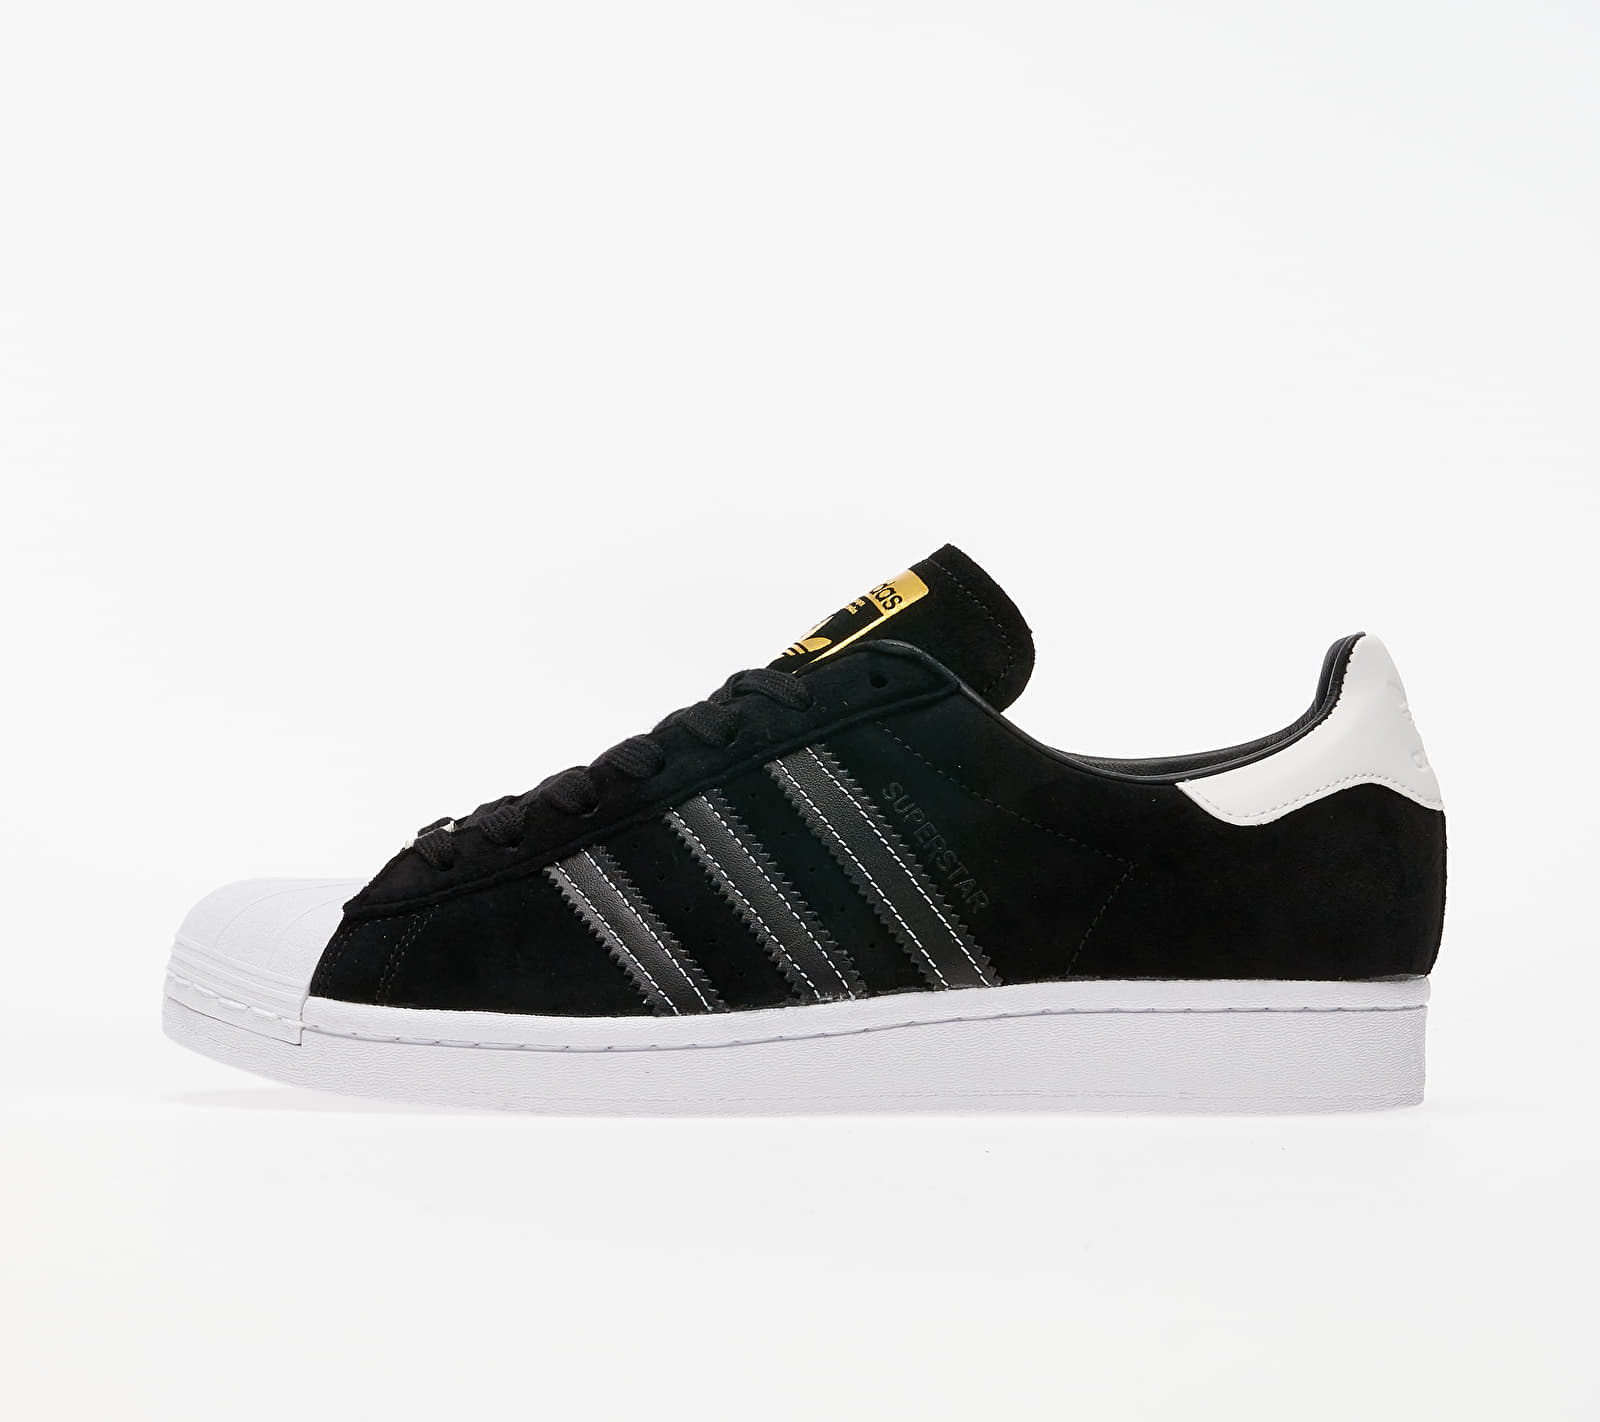 adidas Superstar Core Black/ Core Black/ Gold Metalic EUR 47 1/3